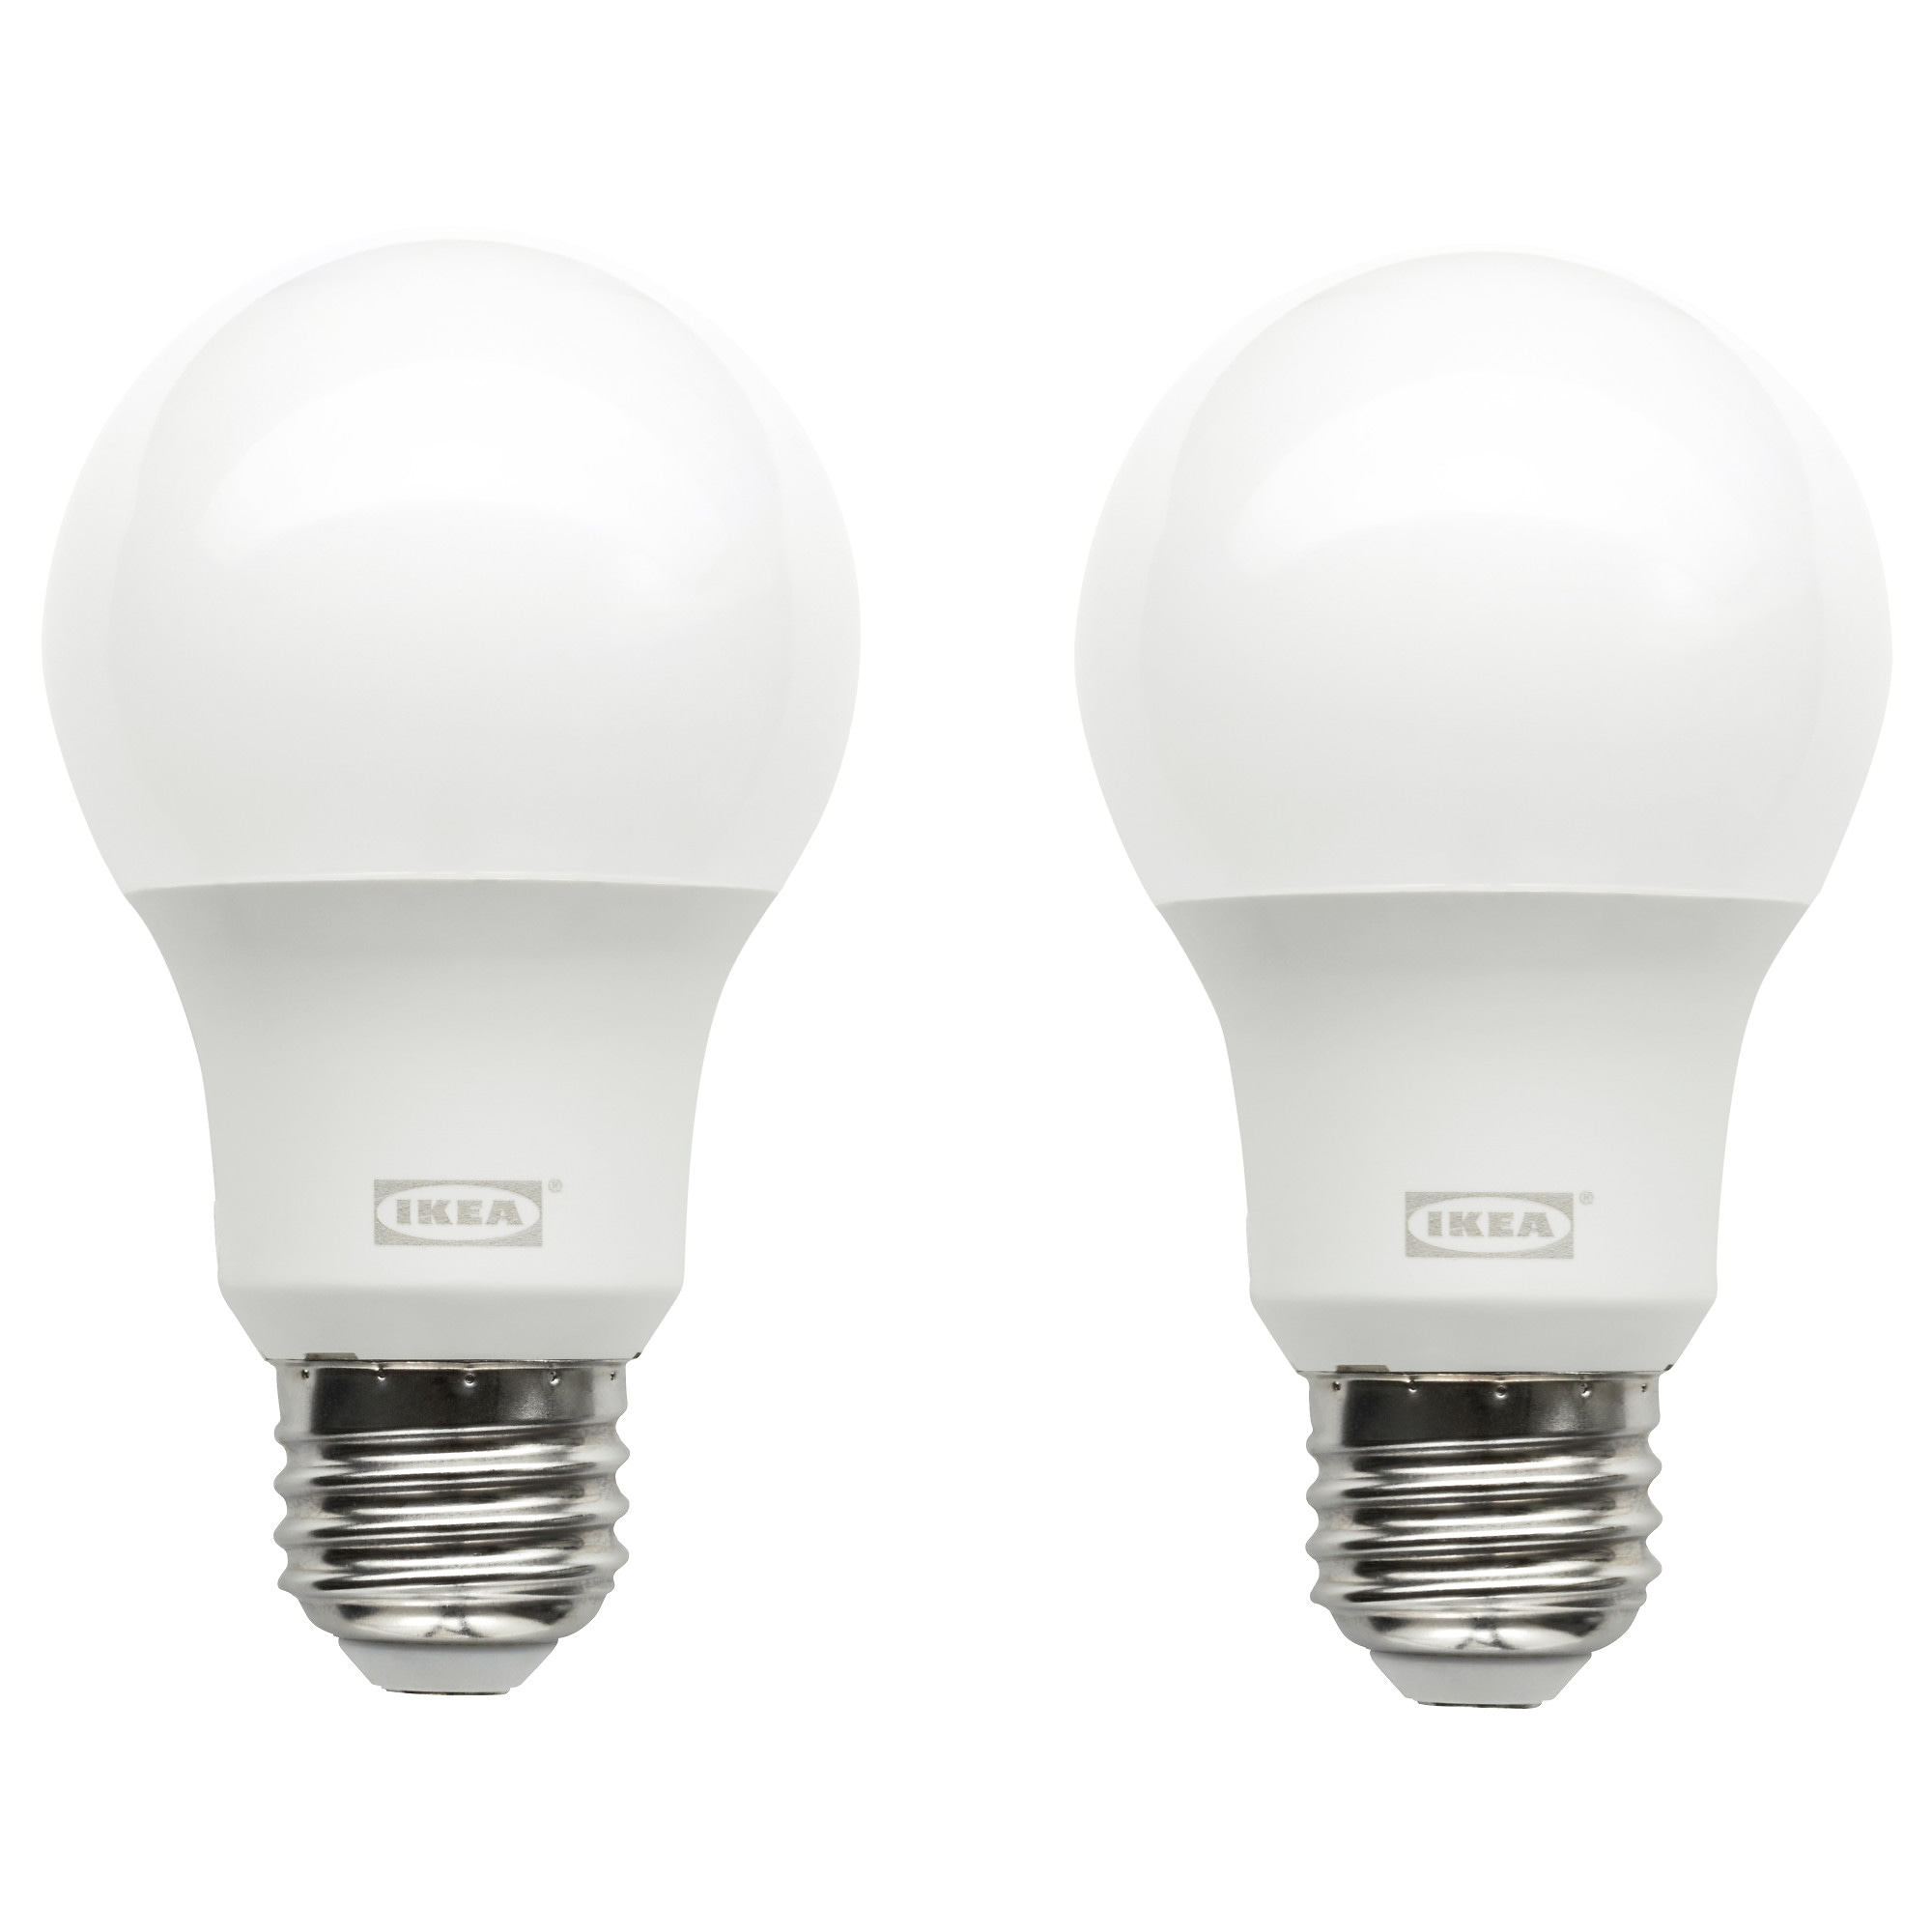 RYET LED bulb E26 600 lumen, globe opal Luminous flux: 600 Lumen Power: